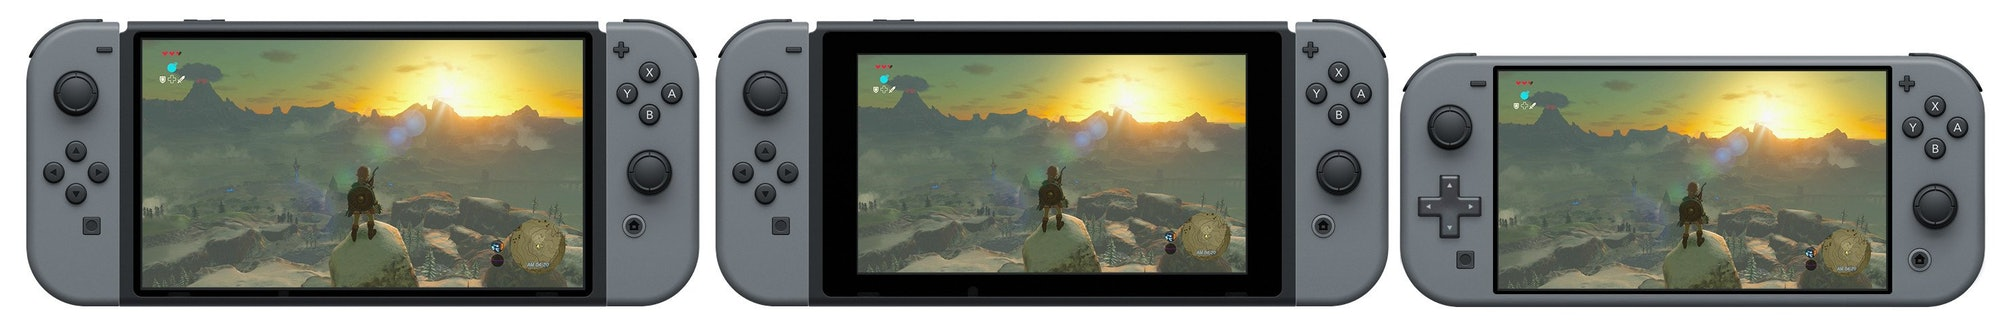 nintendo switch mock ups